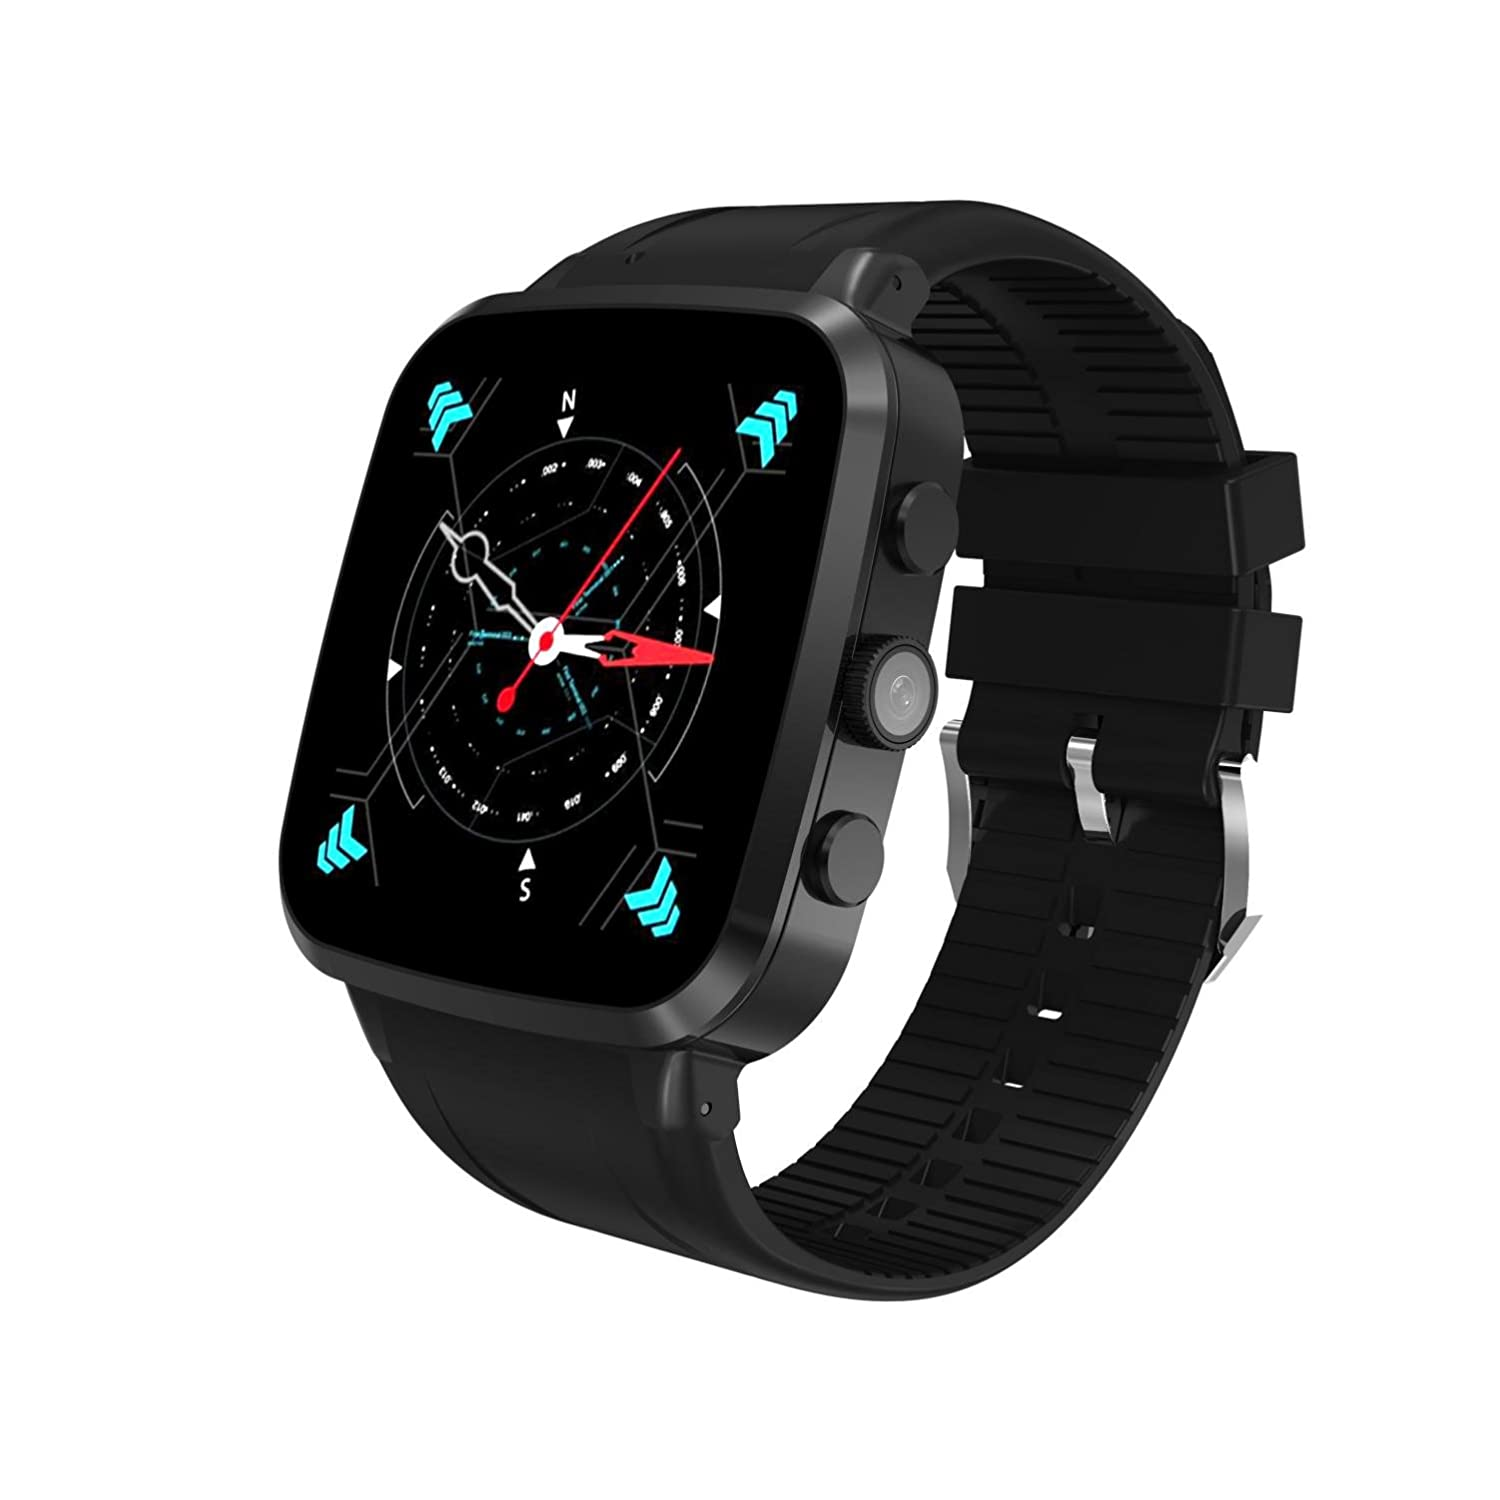 Amazon.com : L@YC Smart Watch N8 3G Android 5.1 System ...